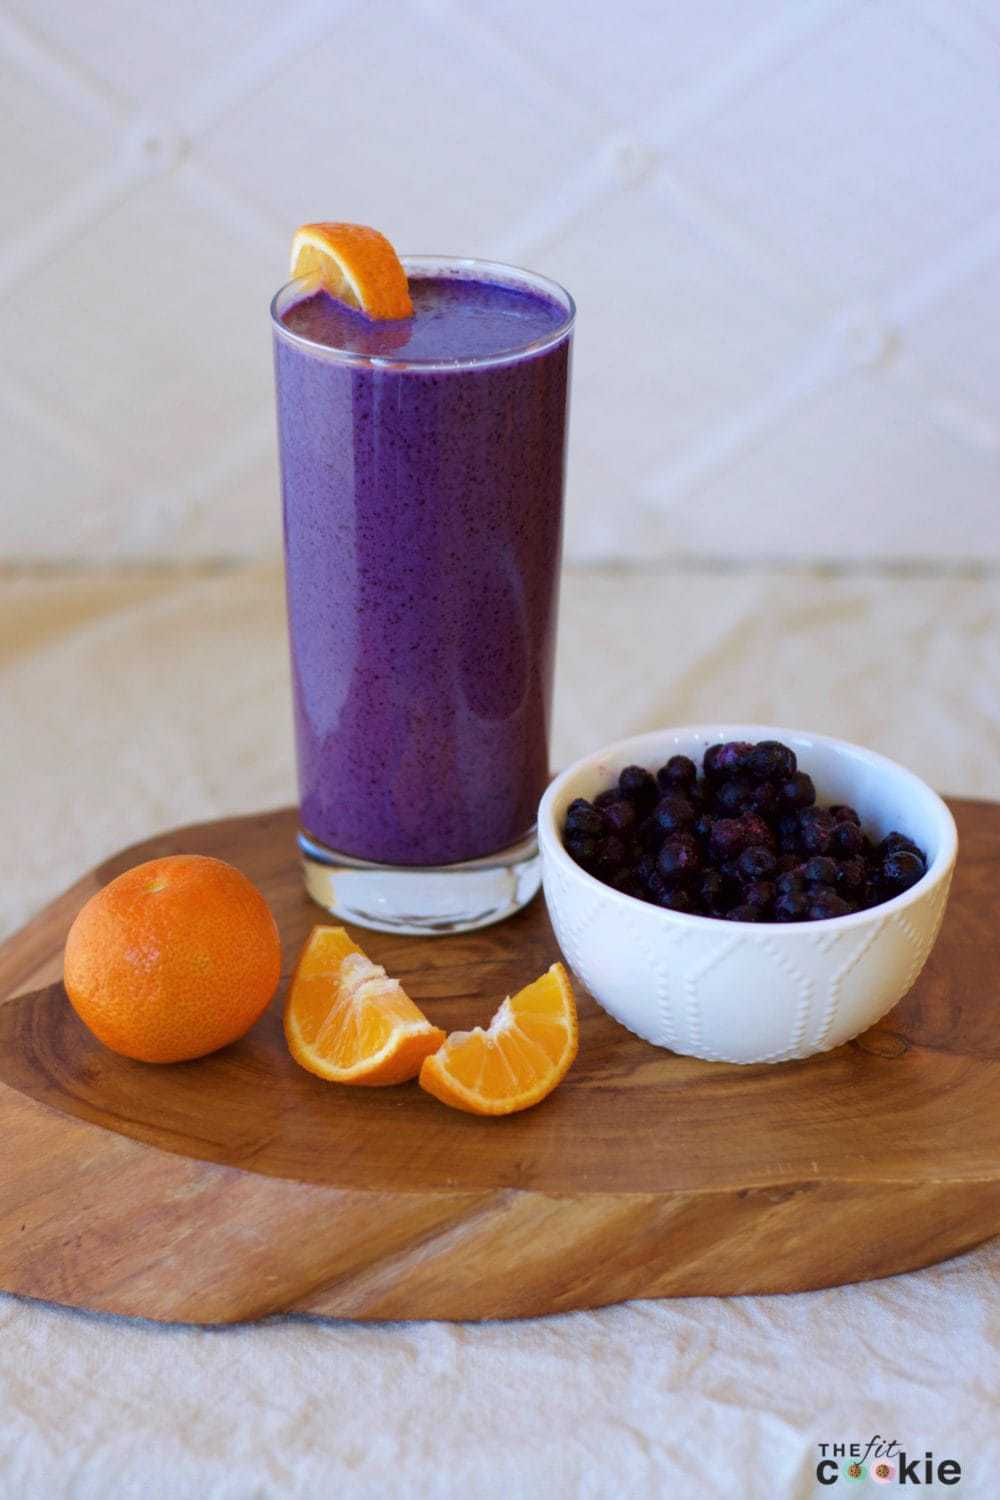 Looking for a cool and quick summer snack? Make this Creamy Blueberry Orange Smoothie - it's even great for breakfast and it's naturally paleo and vegan - @thefitcookie #recipe #vegan #glutenfree